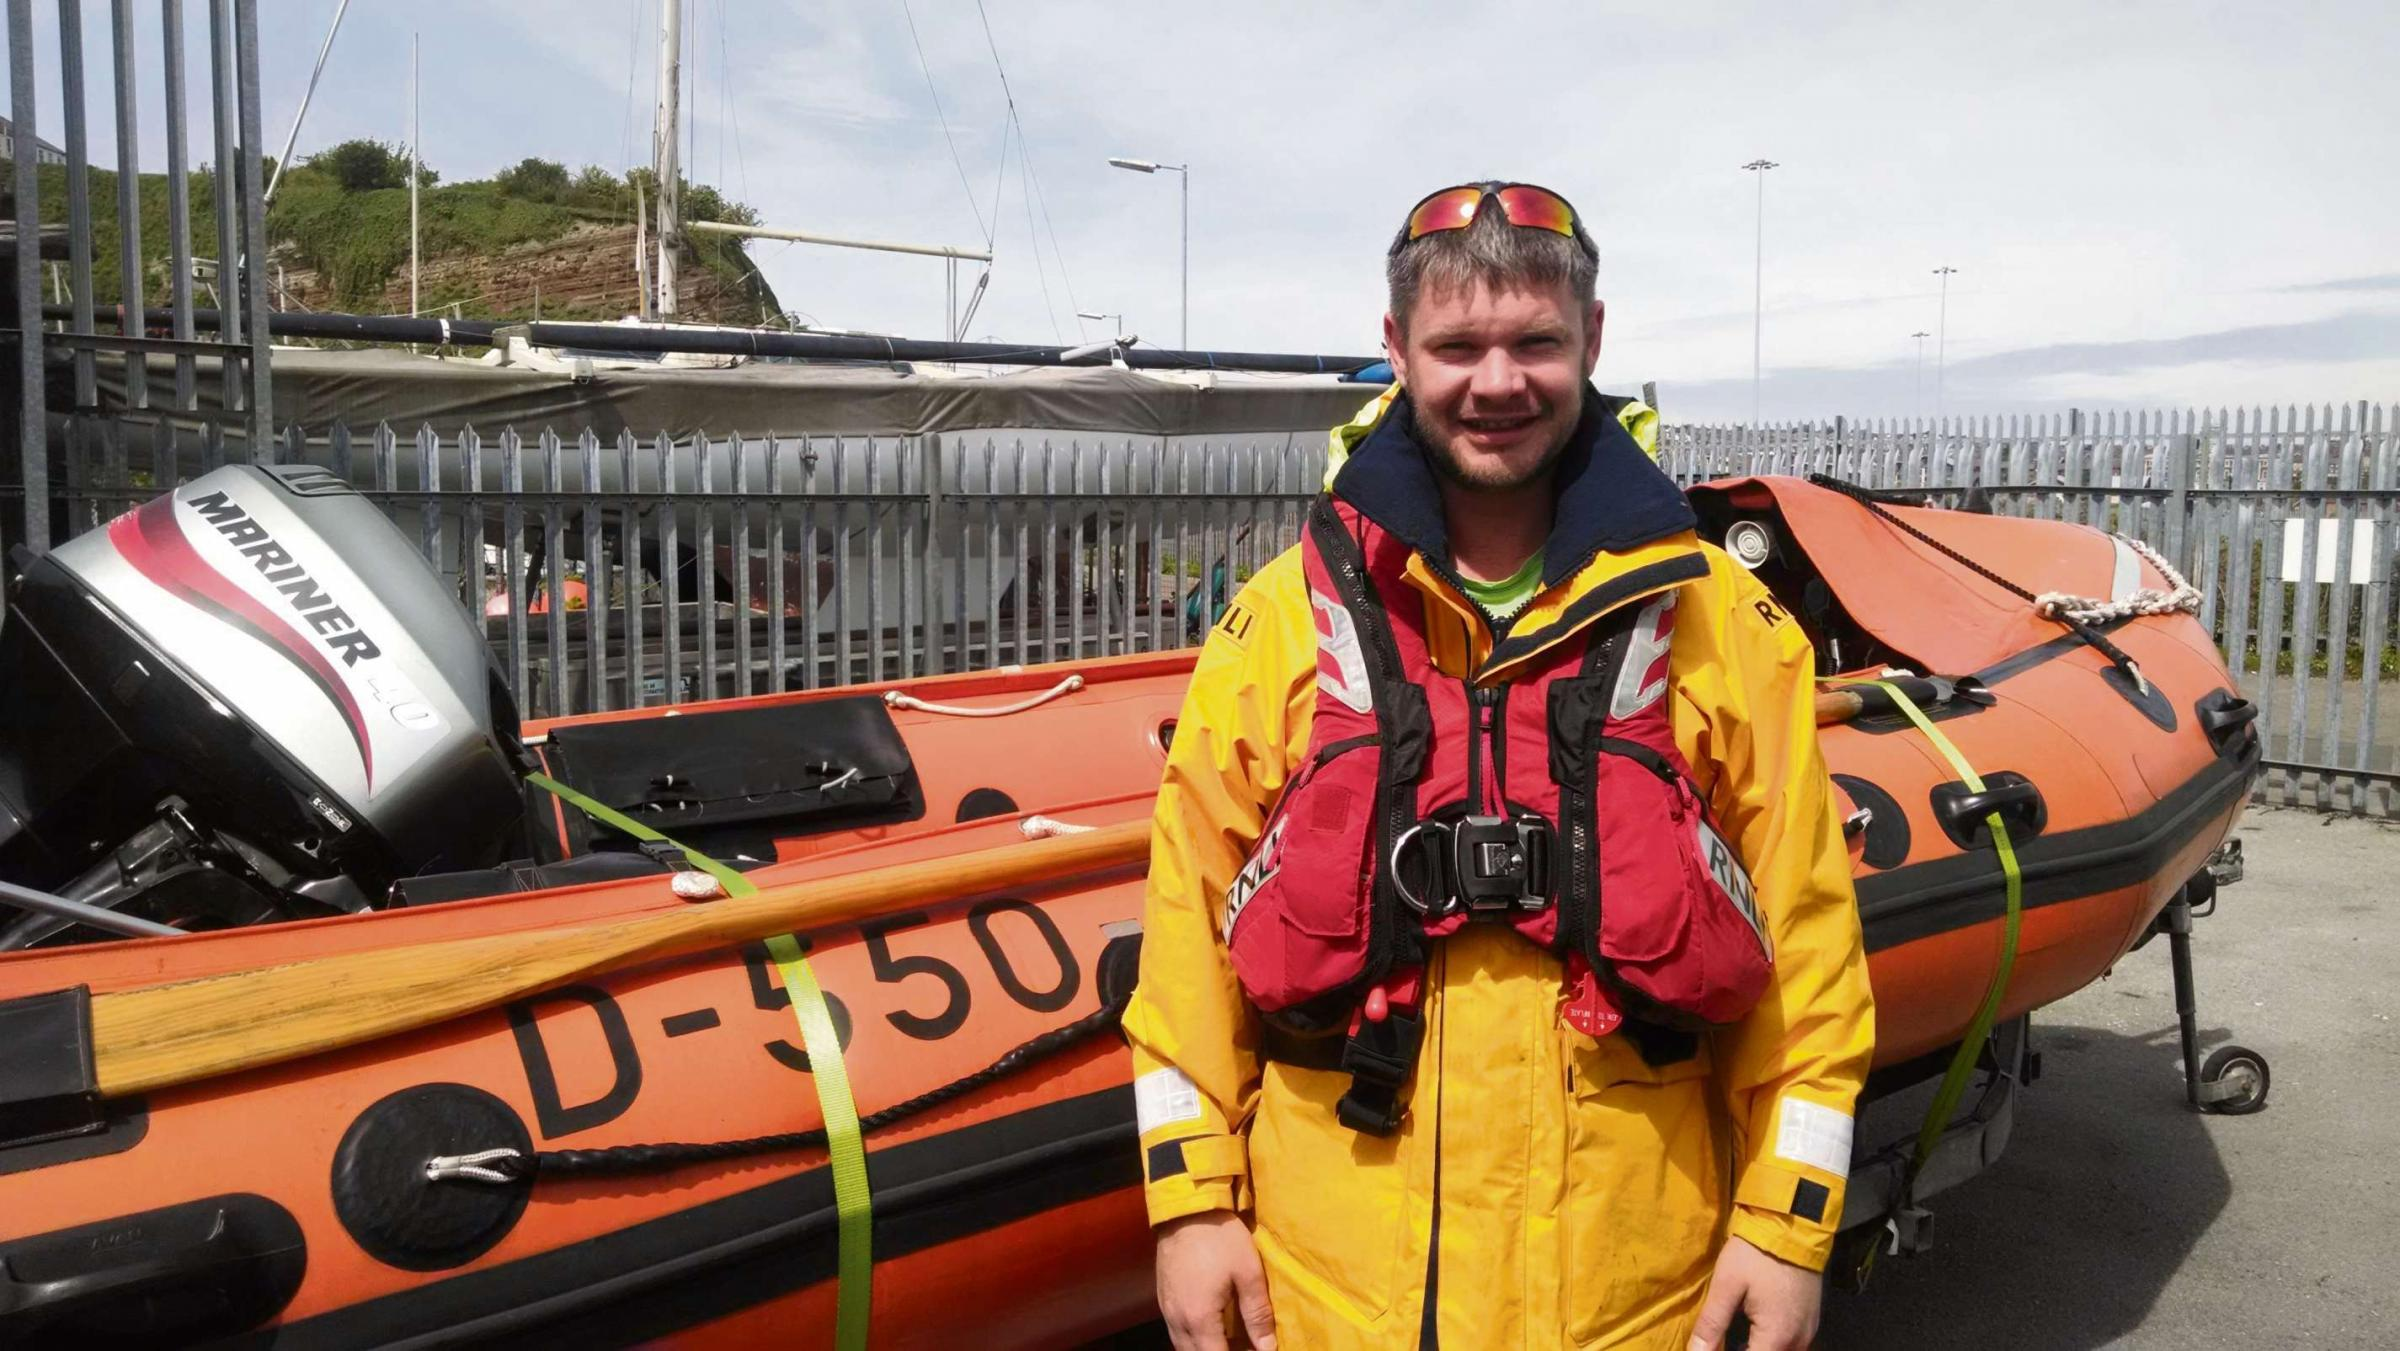 Busy bank holiday for RNLI volunteers